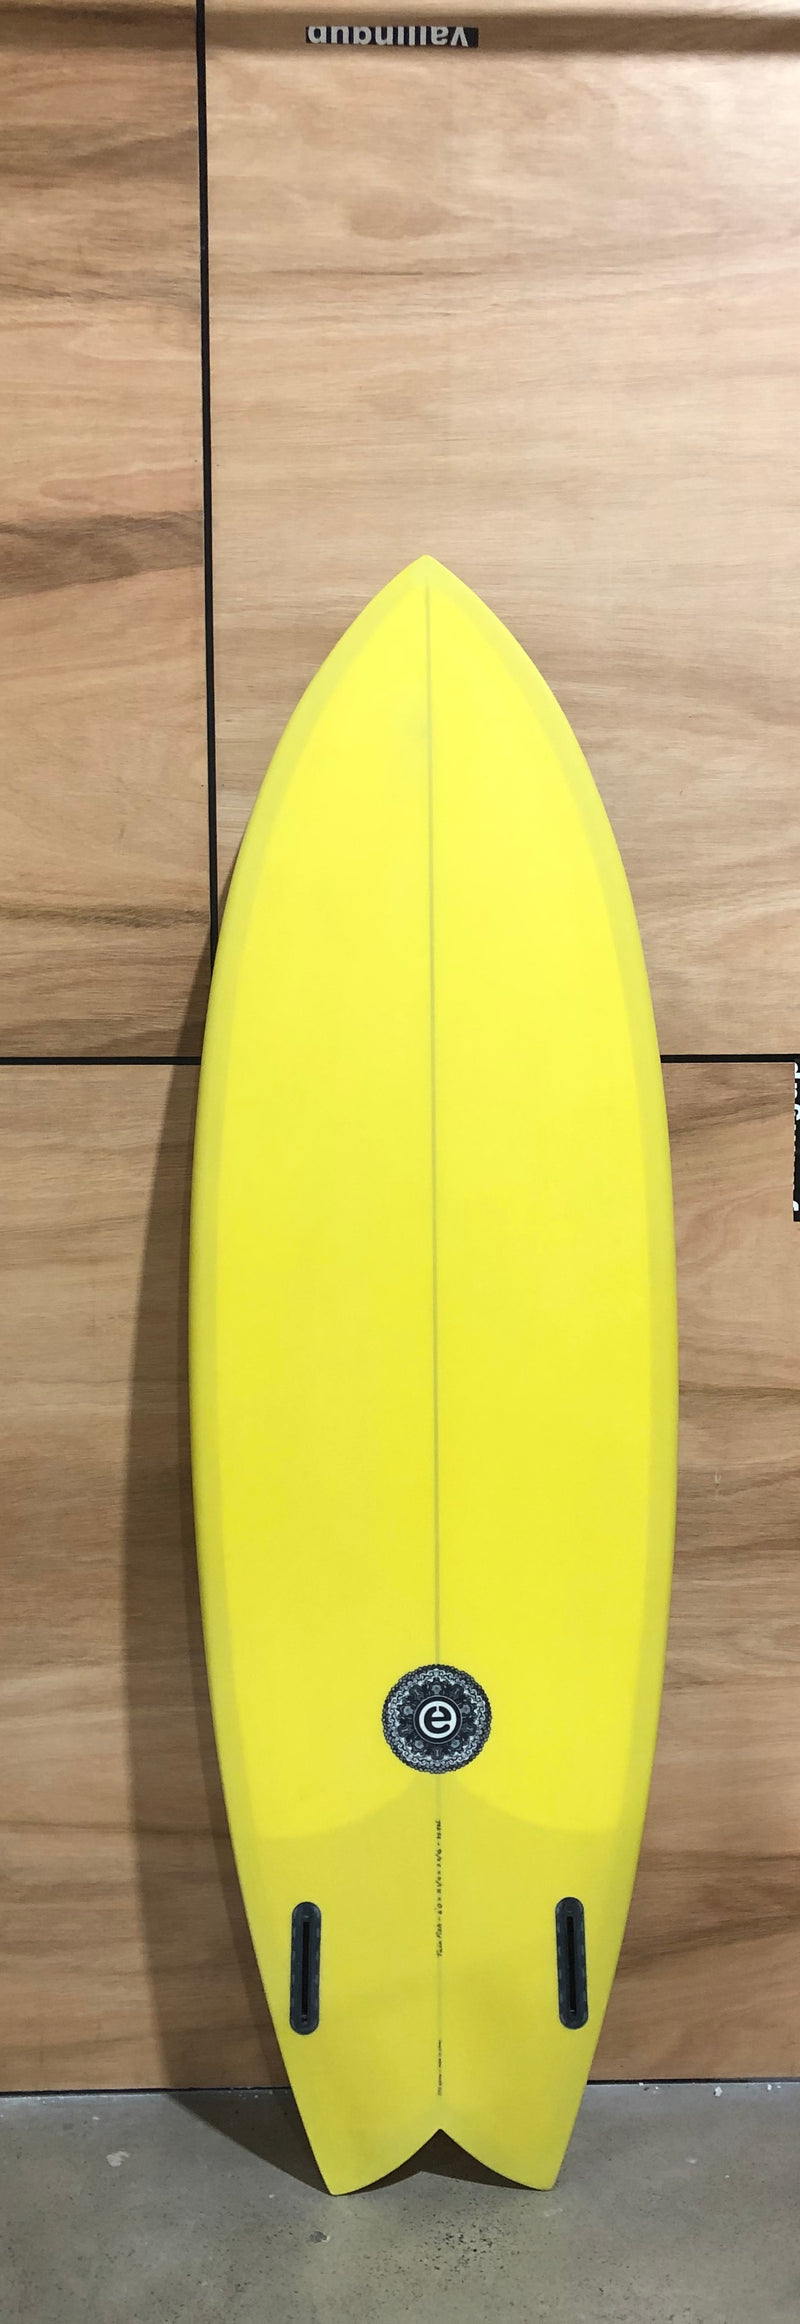 Element - TWIN FISH MUSTARD - Board Store ElementSurfboard